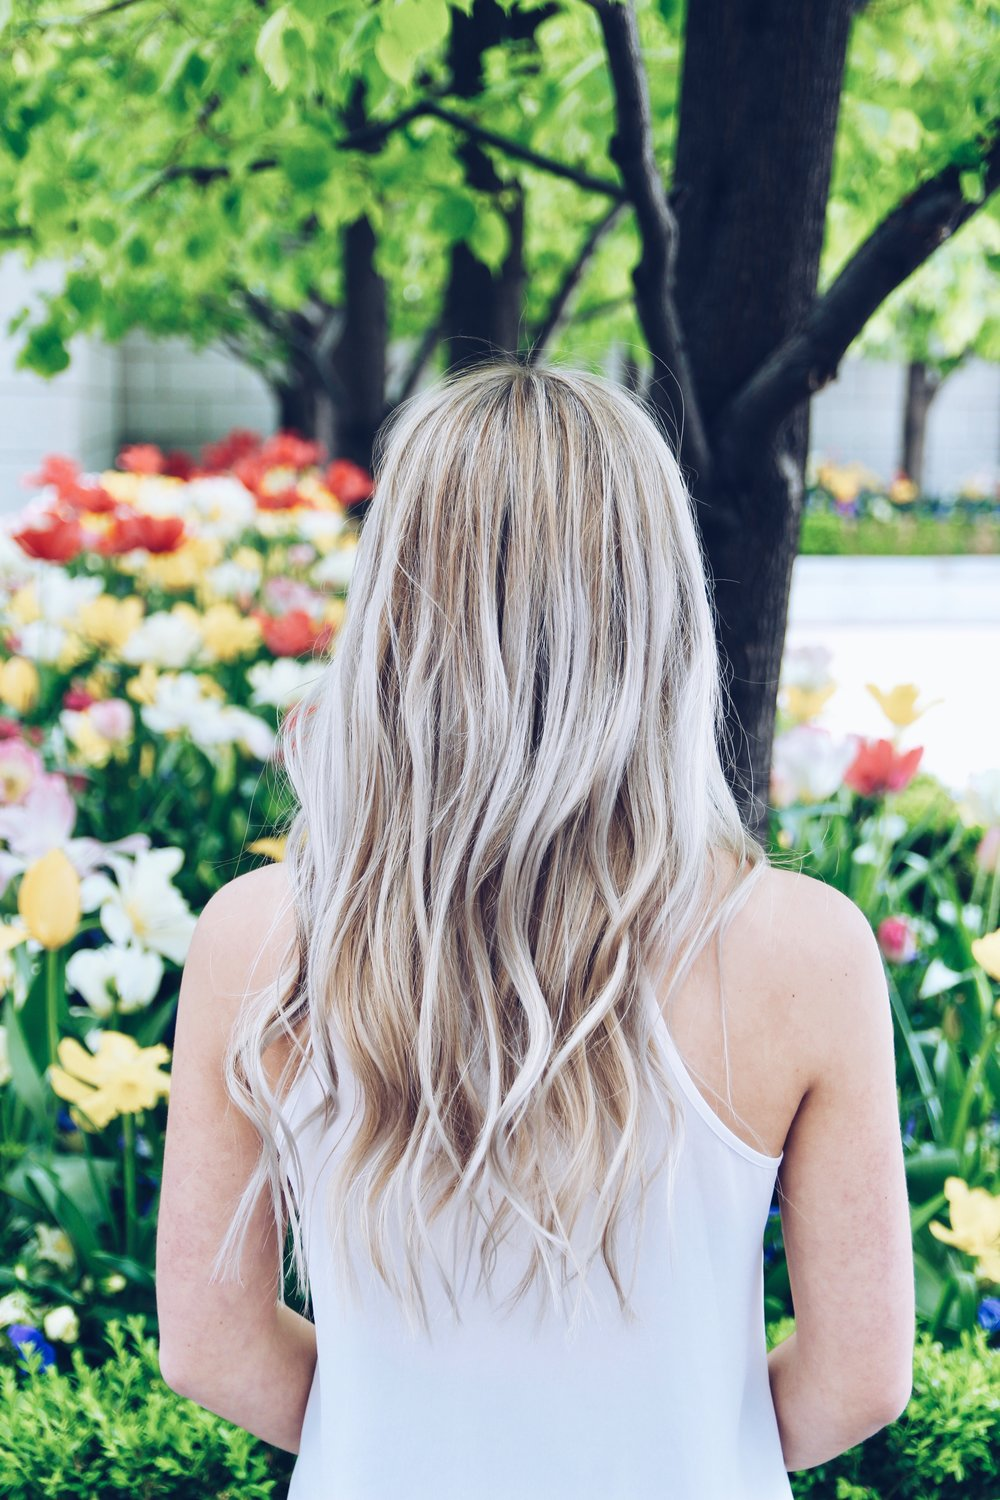 5 products every blonde girl needs